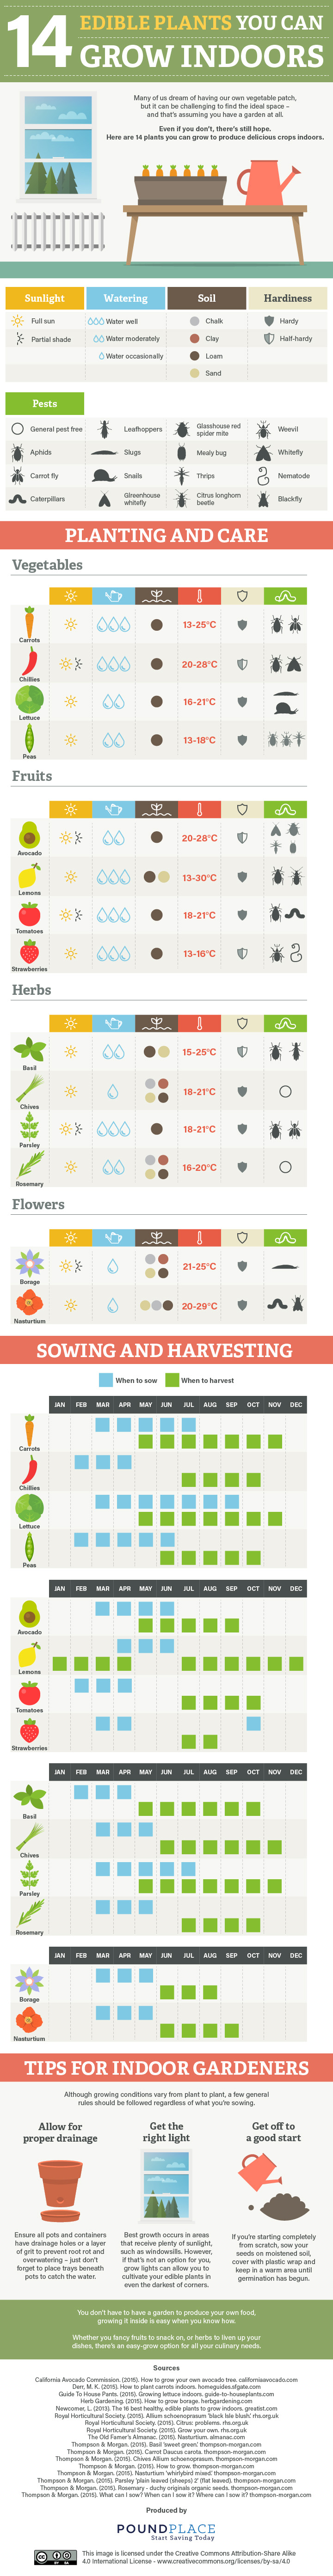 14 Best Edible Plants To Grow Indoors Infographic